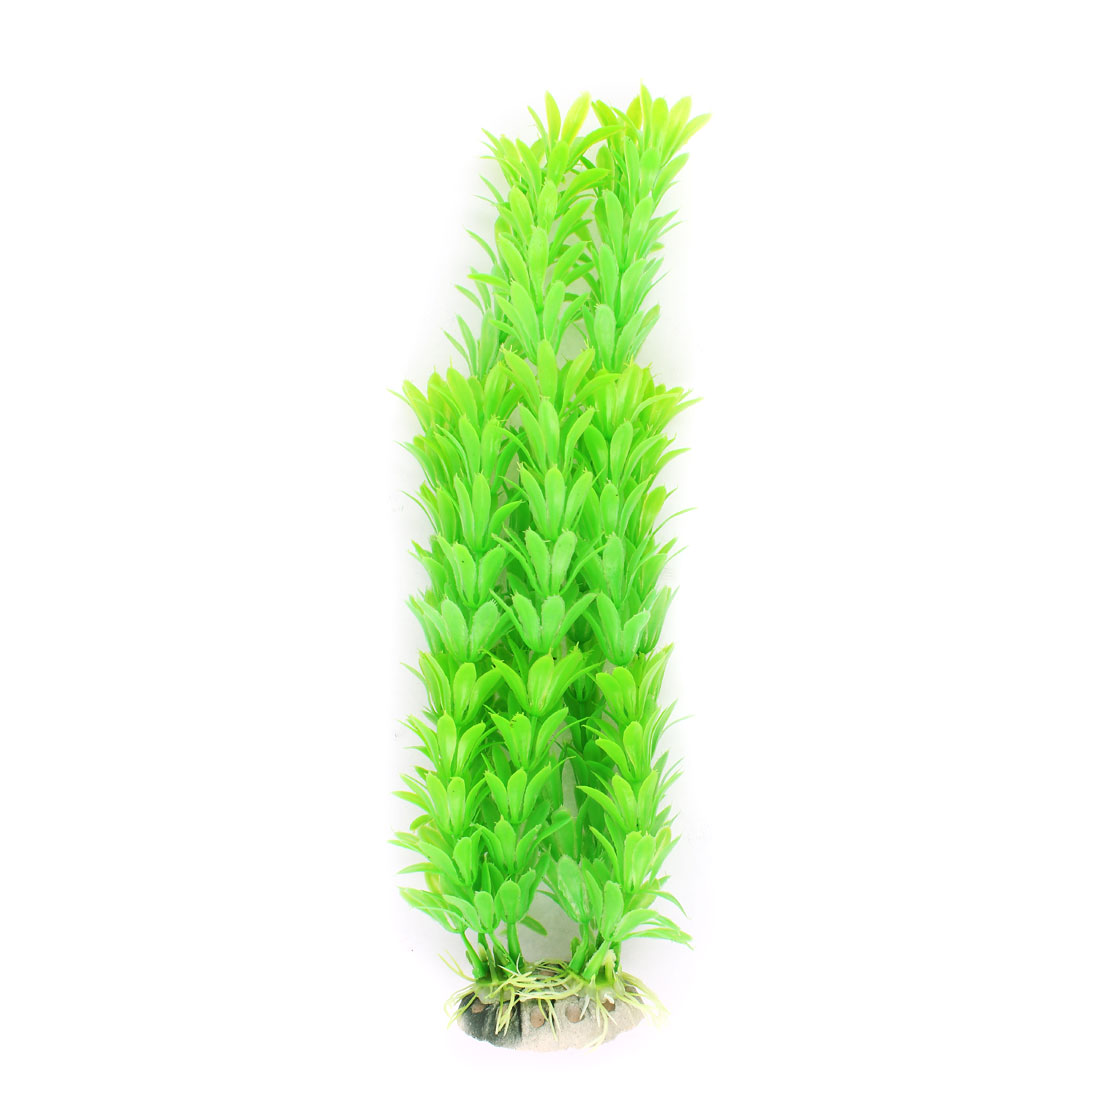 28cm Length Green Plastic Manmade Aquarium Water Plant Ornament for Fishbowl Fish Tank